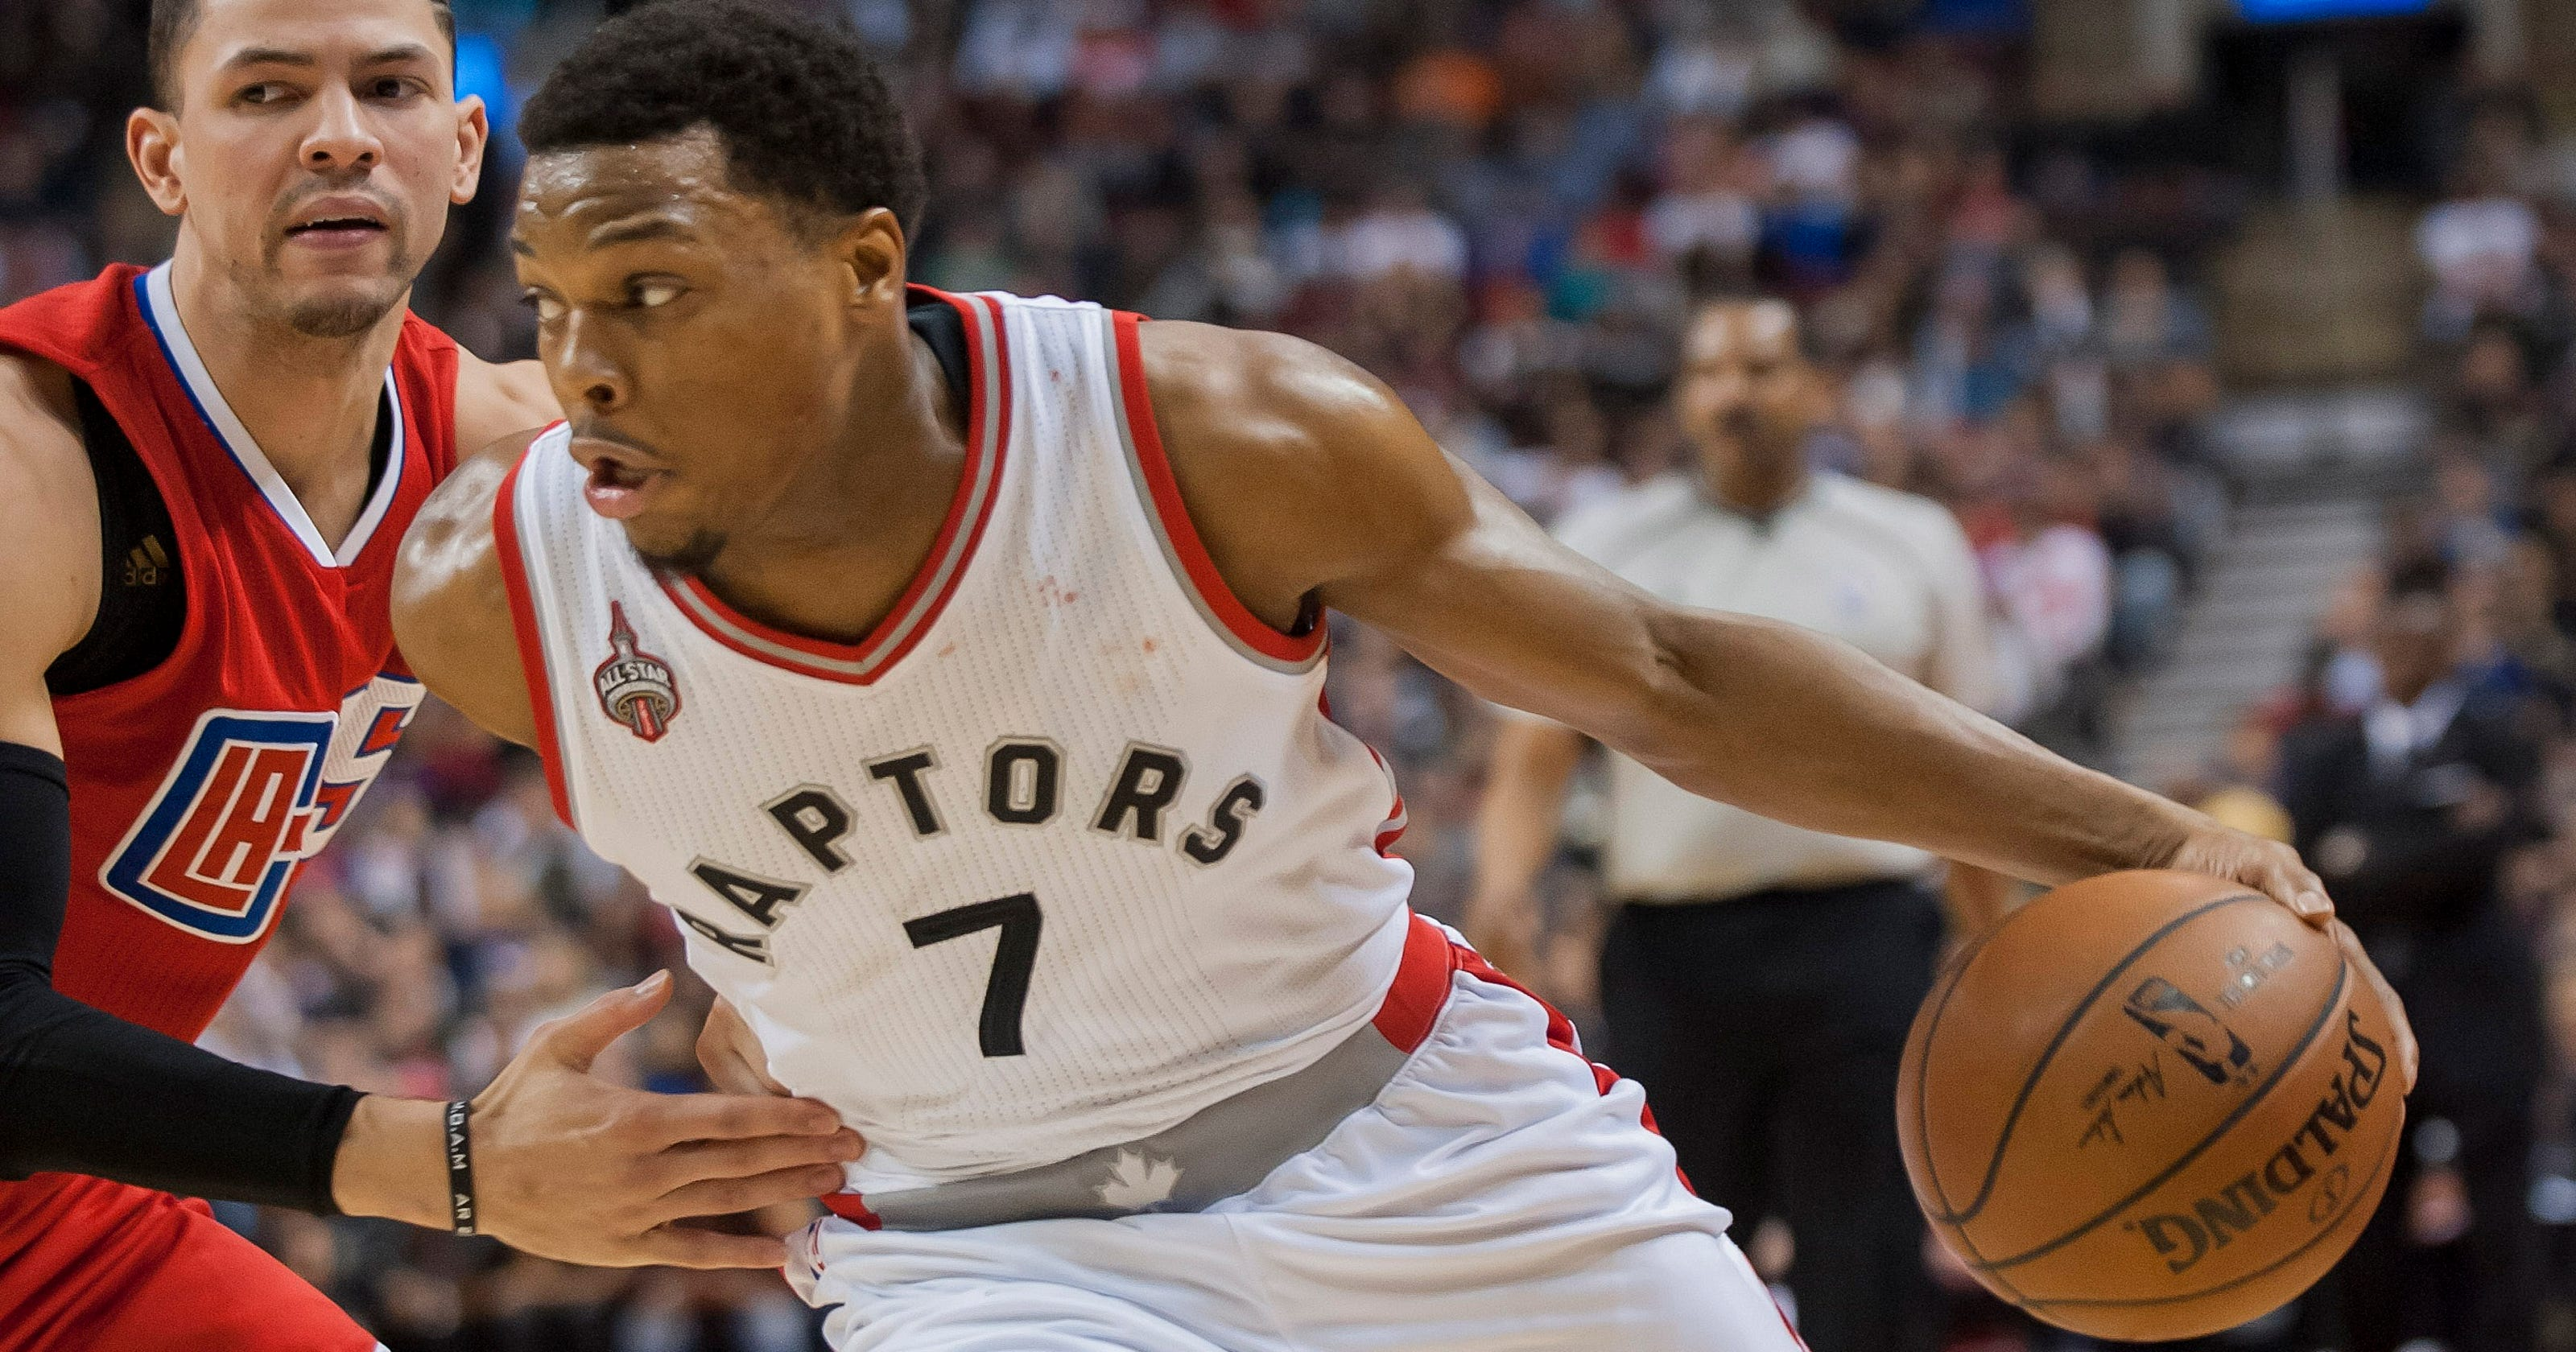 dfab0ab48b4 Raptors down Clippers for eighth straight win